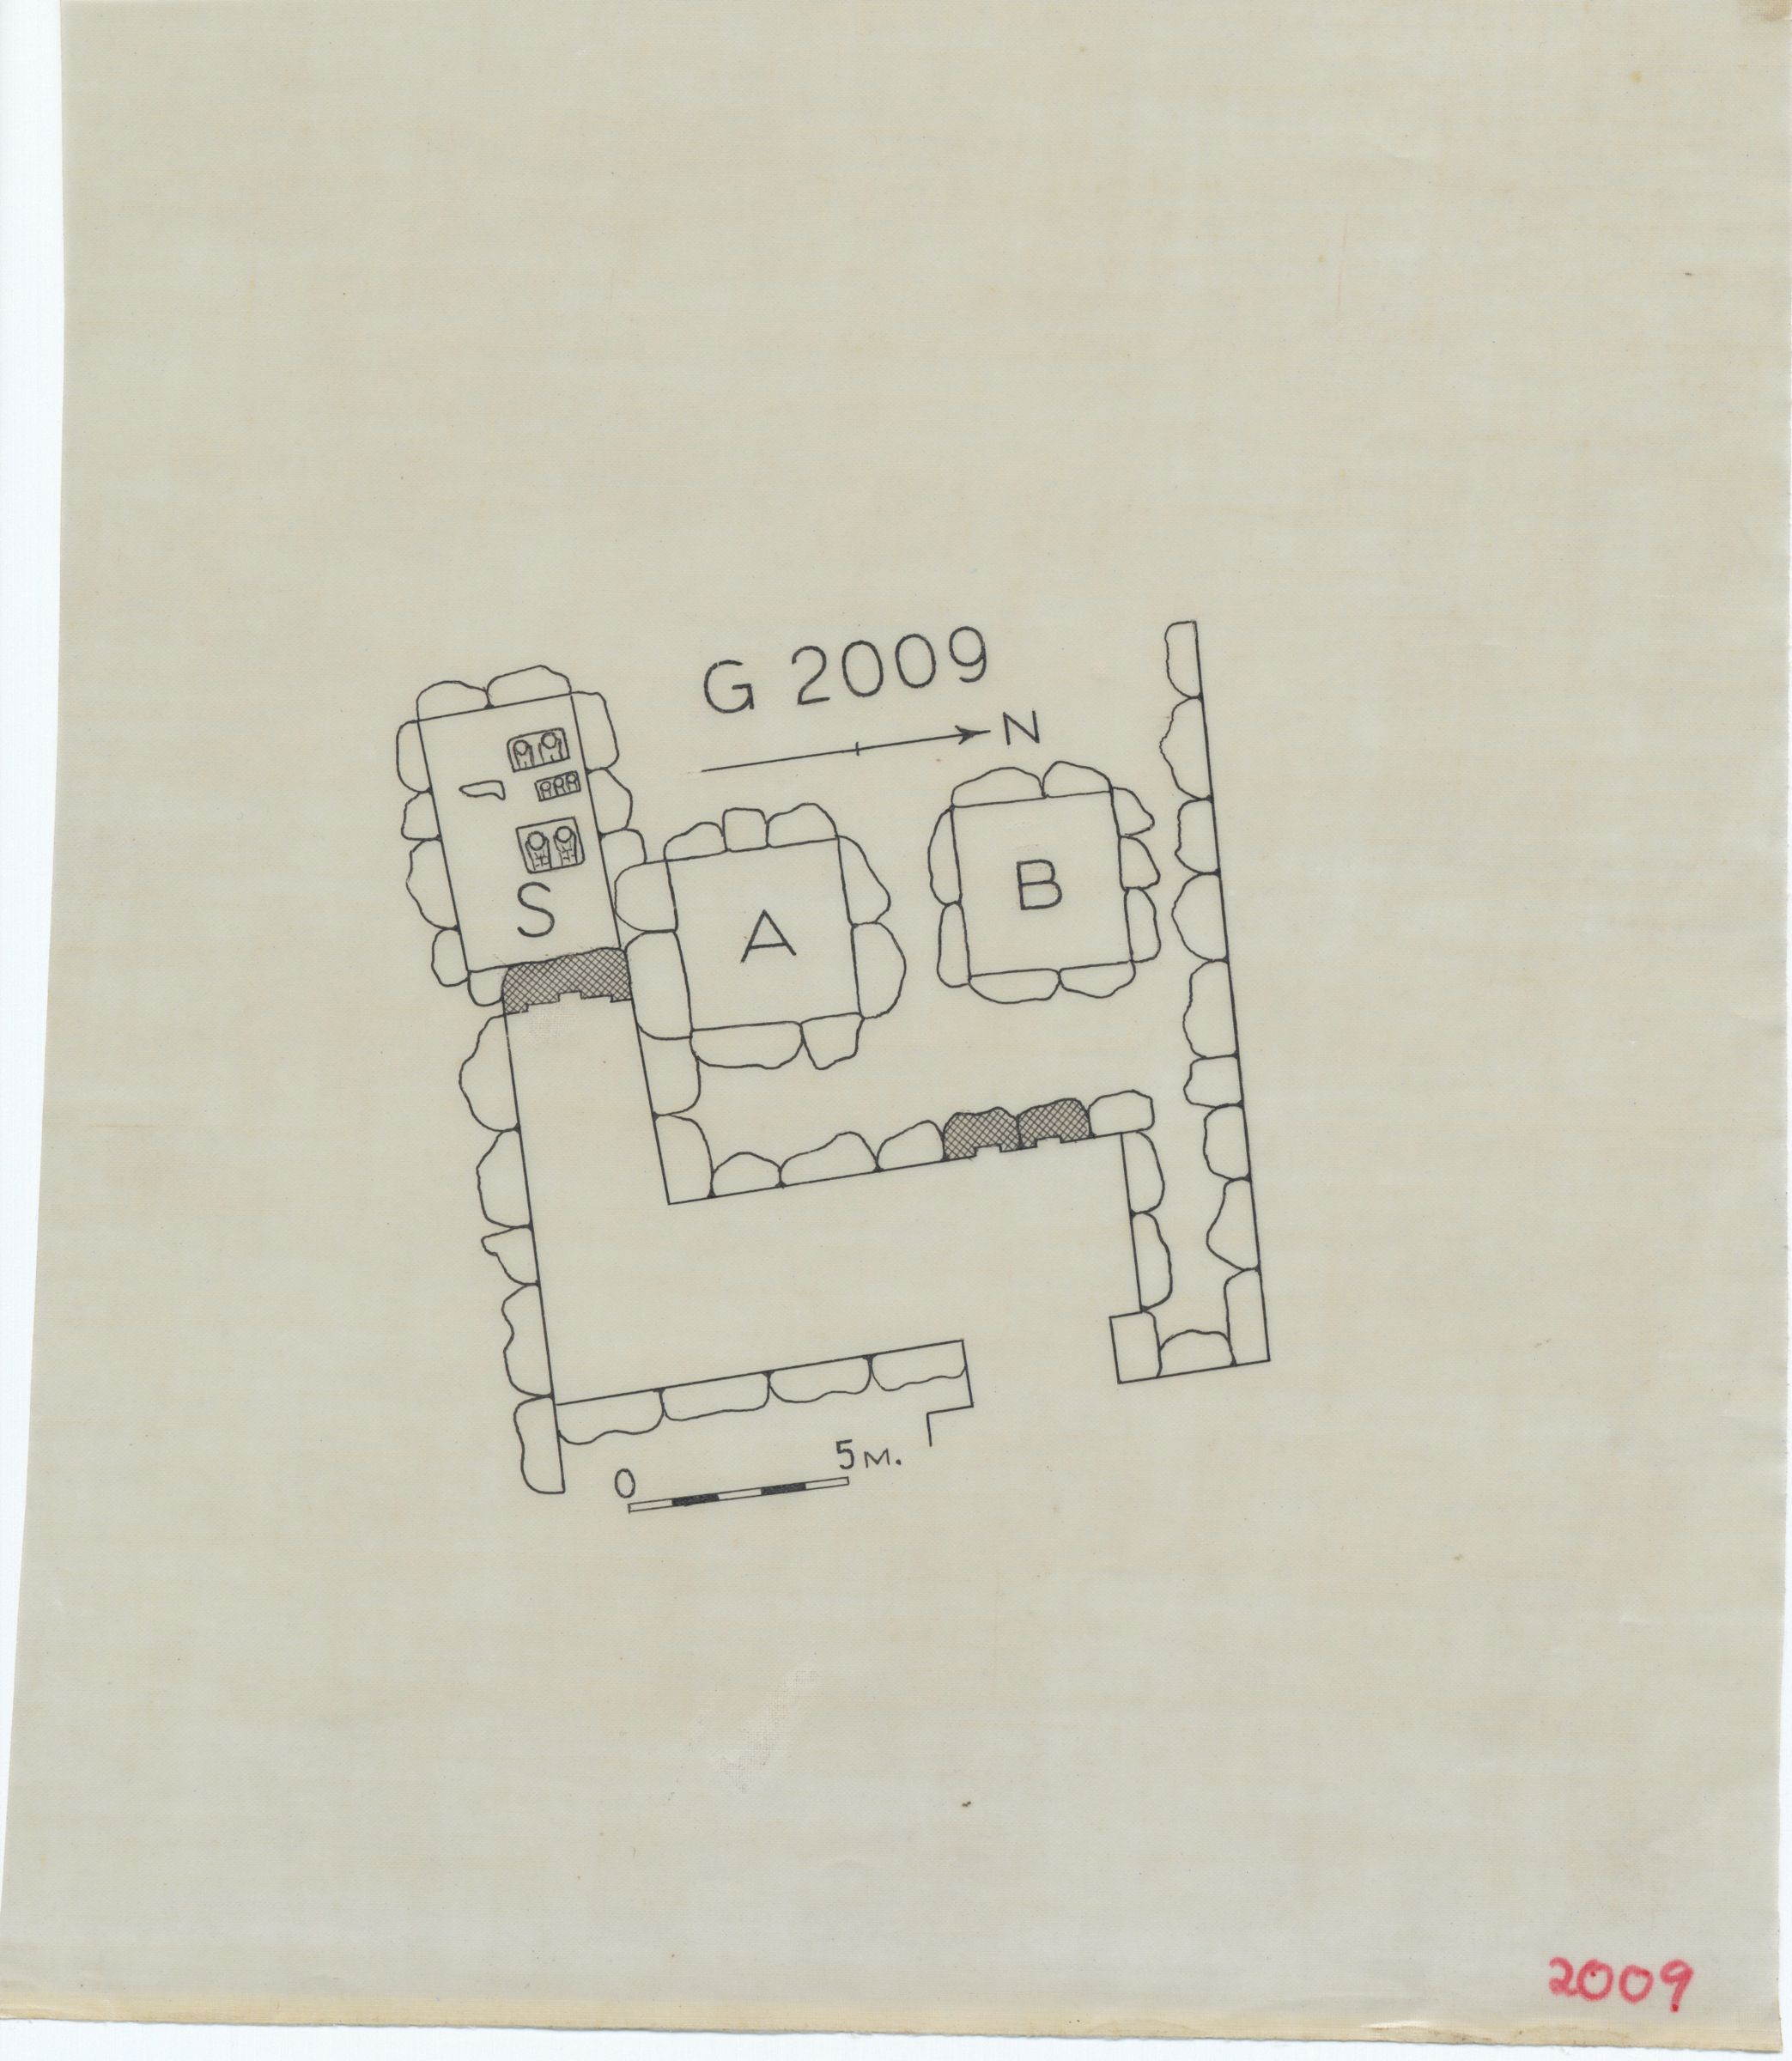 Maps and plans: G 2009, Plan of chapel area